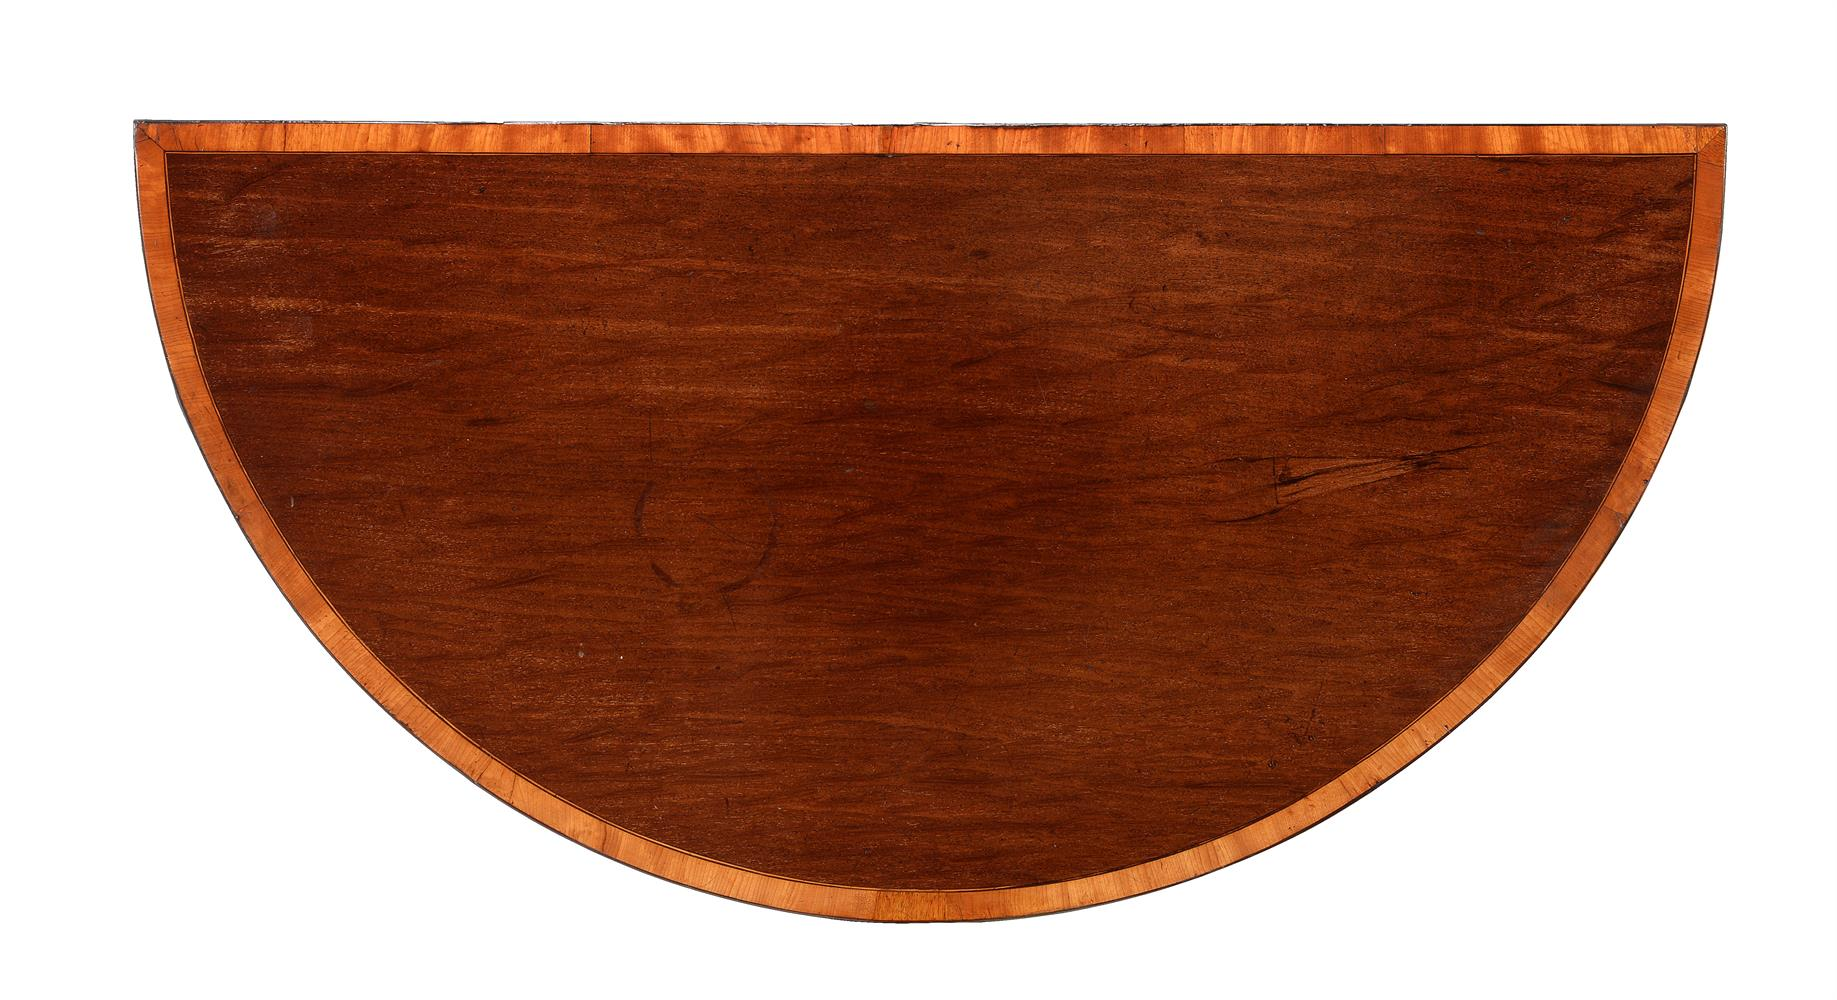 A GEORGE III 'FUSTIC' MAHOGANY AND CROSSBANDED DEMI-LUNE CARD TABLE, CIRCA 1790 - Image 2 of 3